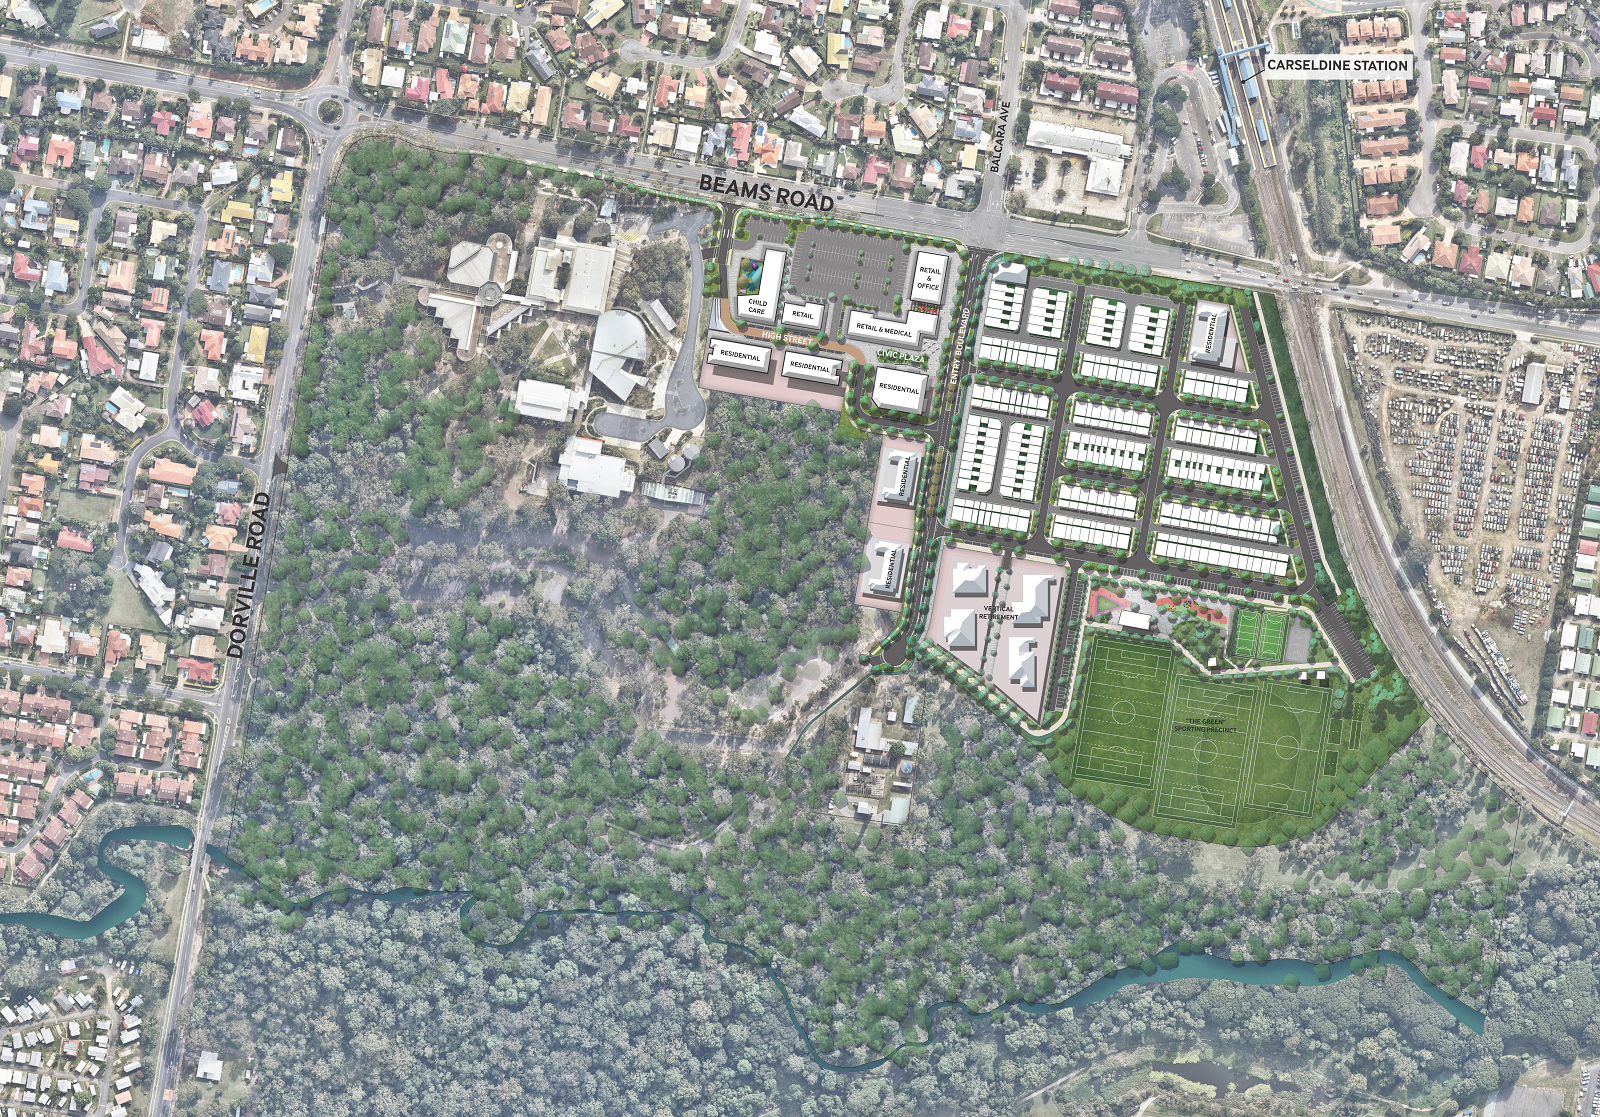 Carseldine Urban Village Masterplan Design